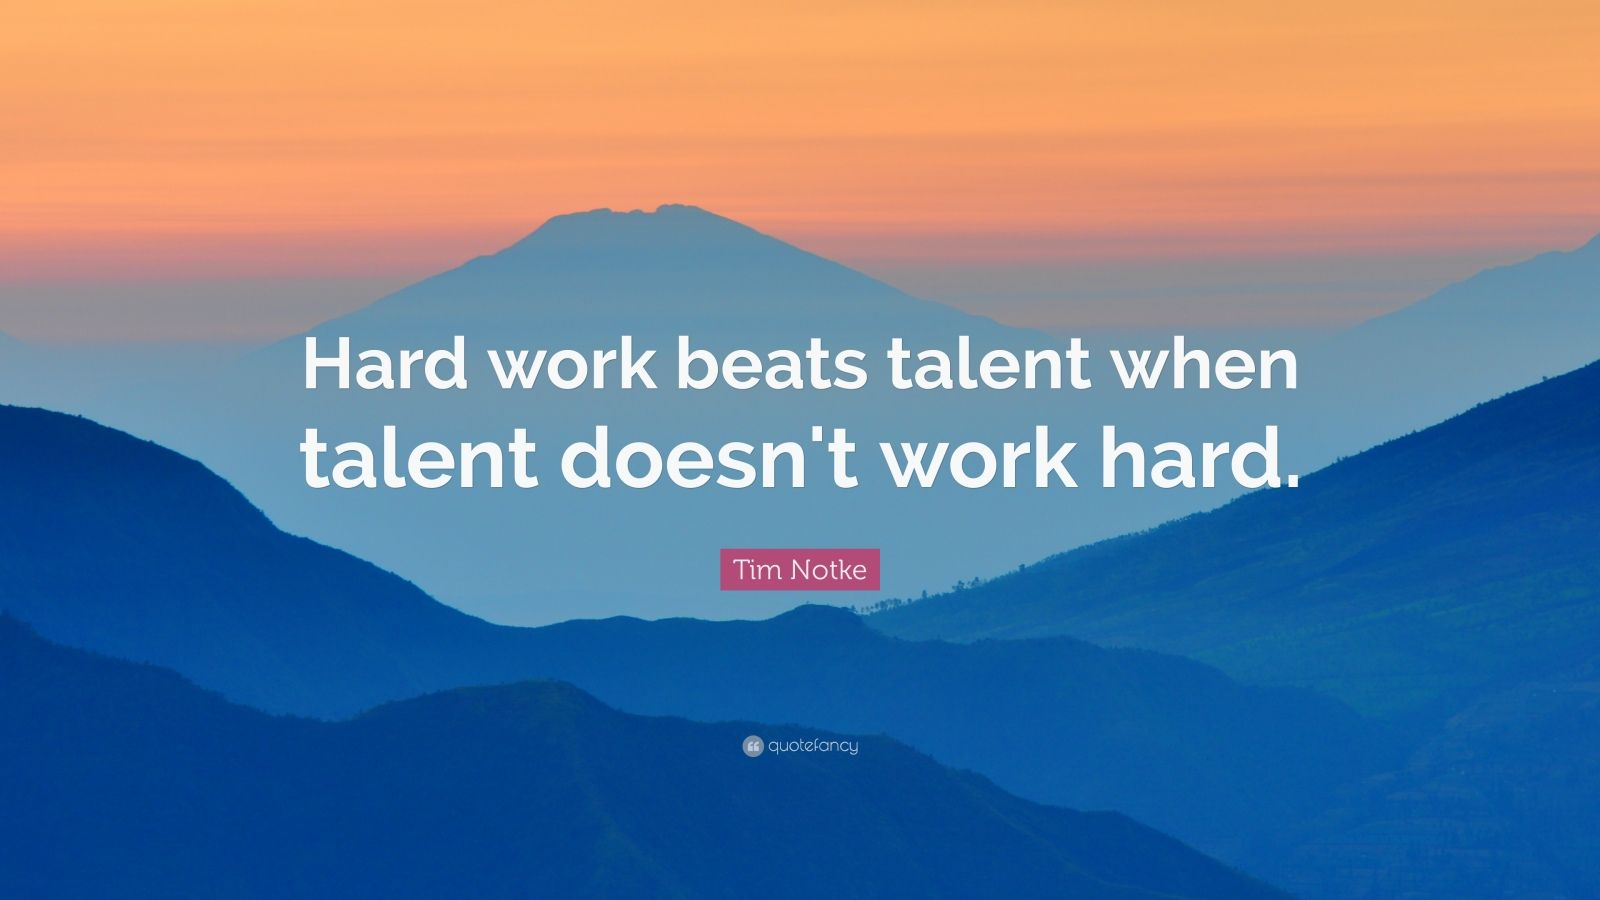 Startup Quotes Wallpaper Tim Notke Quote Hard Work Beats Talent When Talent Doesn